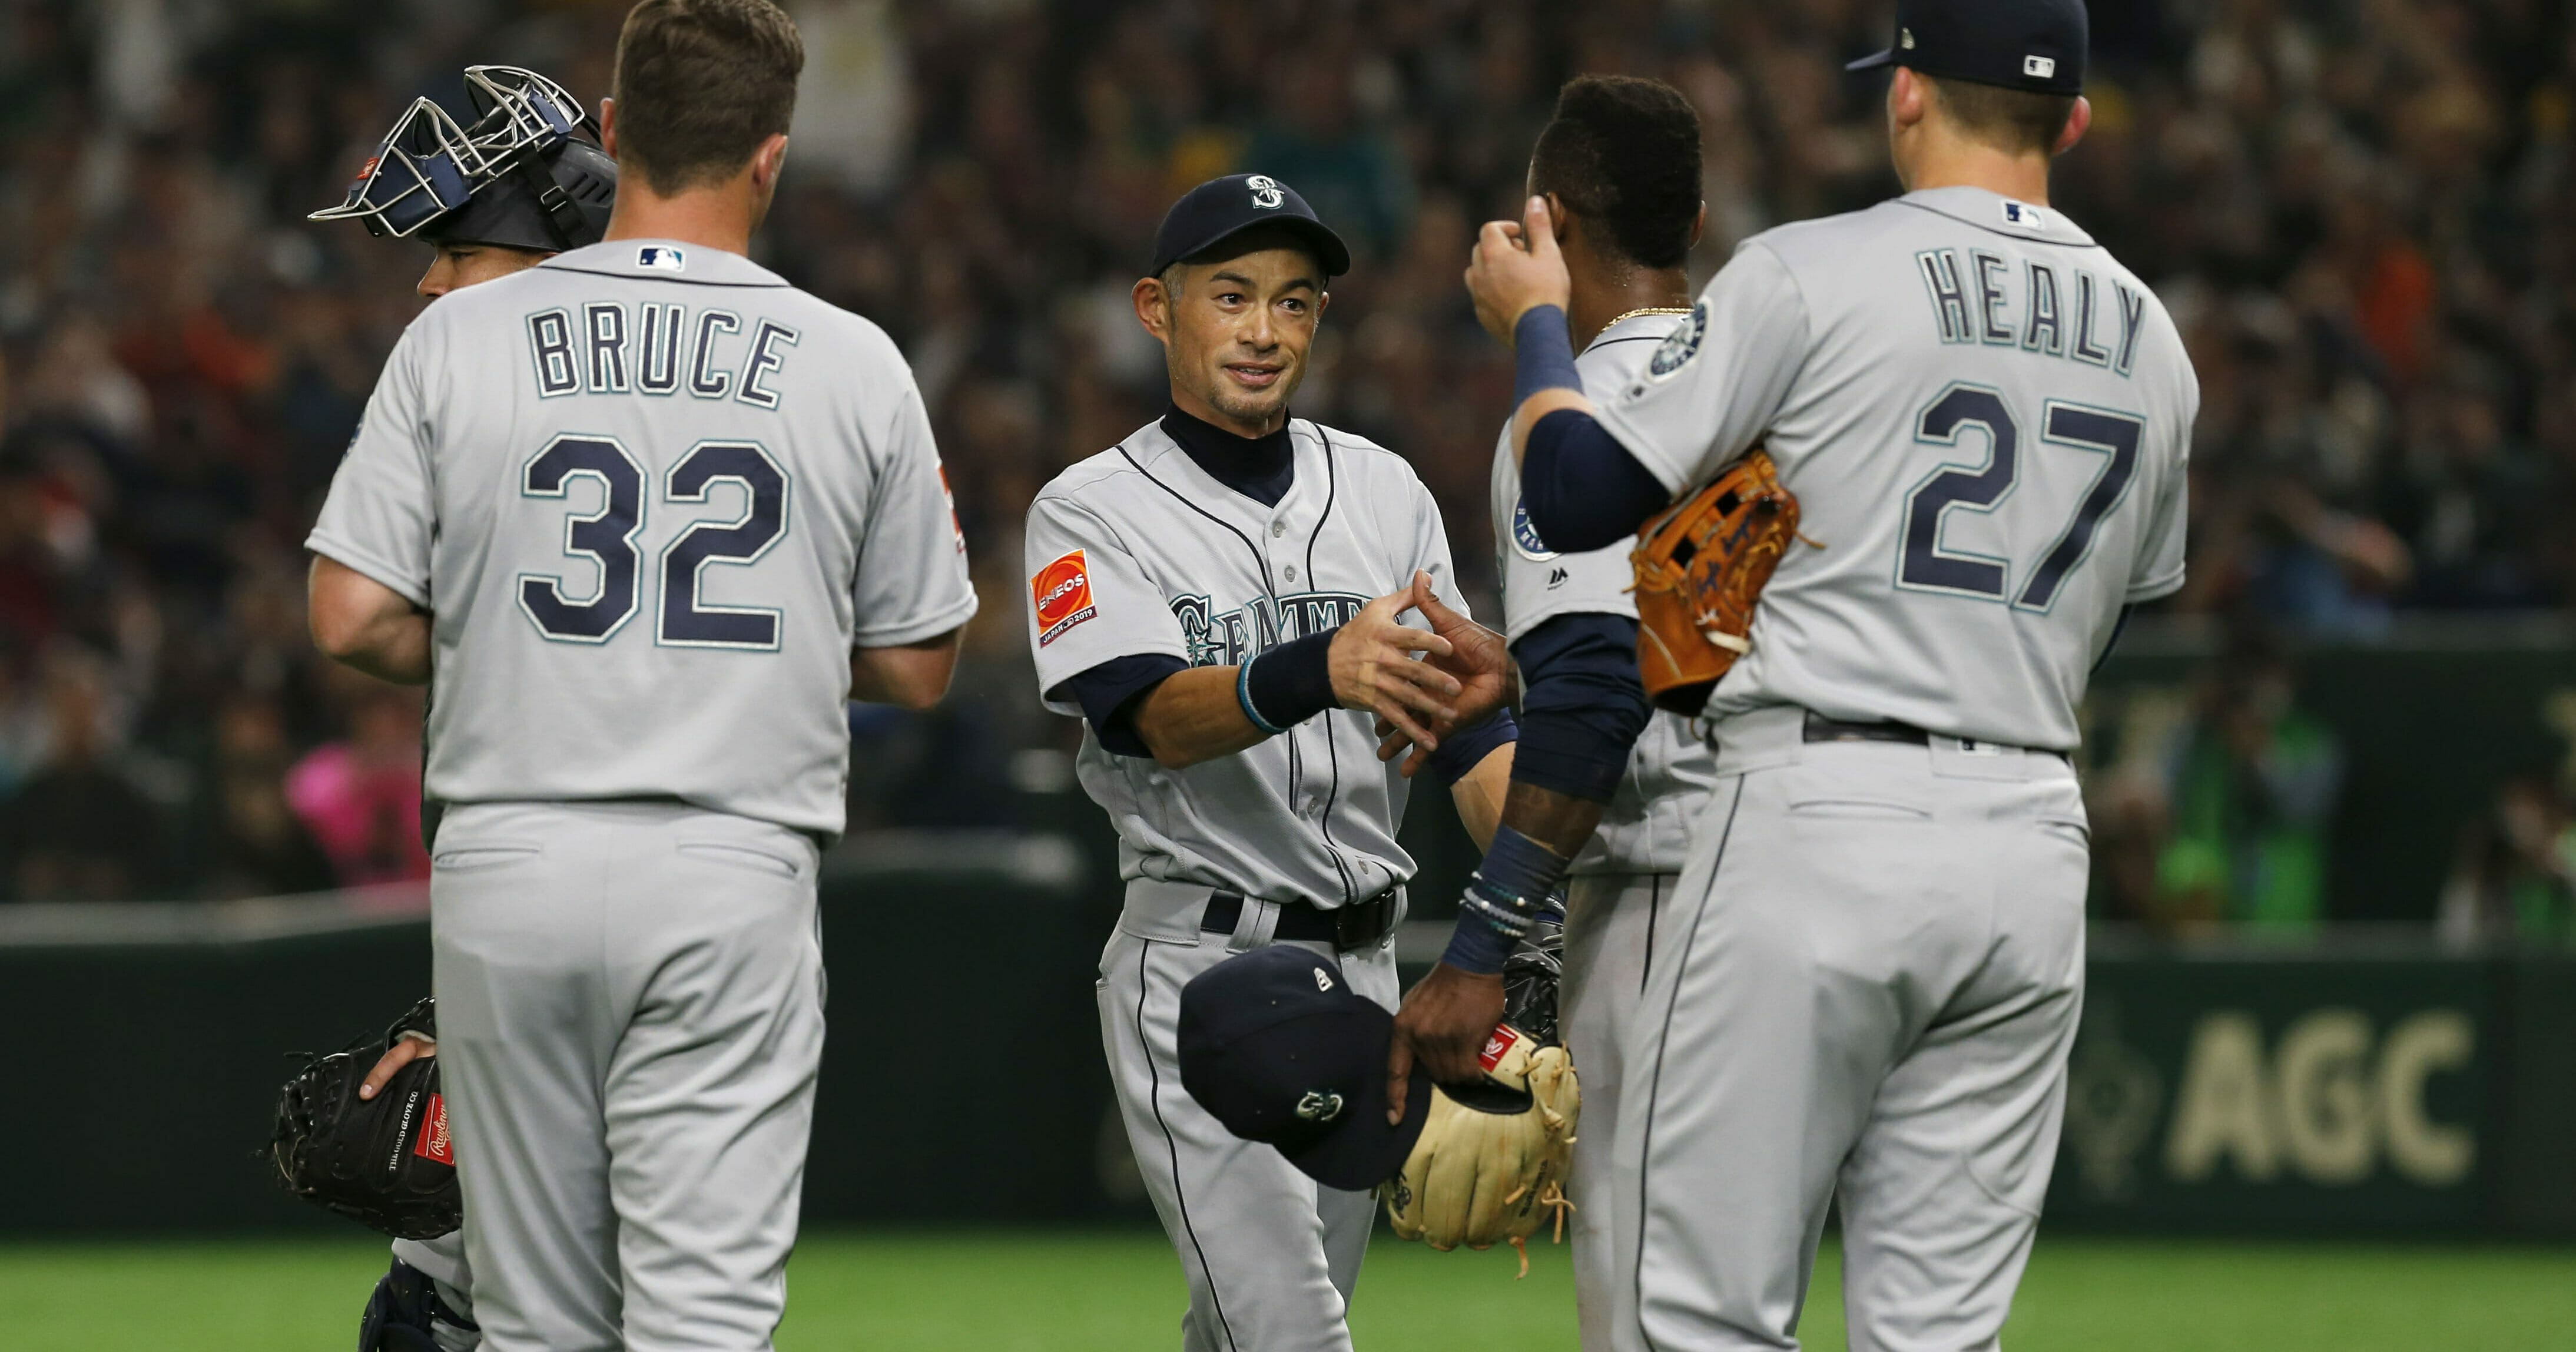 Seattle Mariners right fielder Ichiro Suzuki, center, talks to his teammates while leaving the field for defense substitution in the fourth inning of Game 1 of the Major League opening baseball series against the Oakland Athletics in Tokyo on, March 20, 2019.